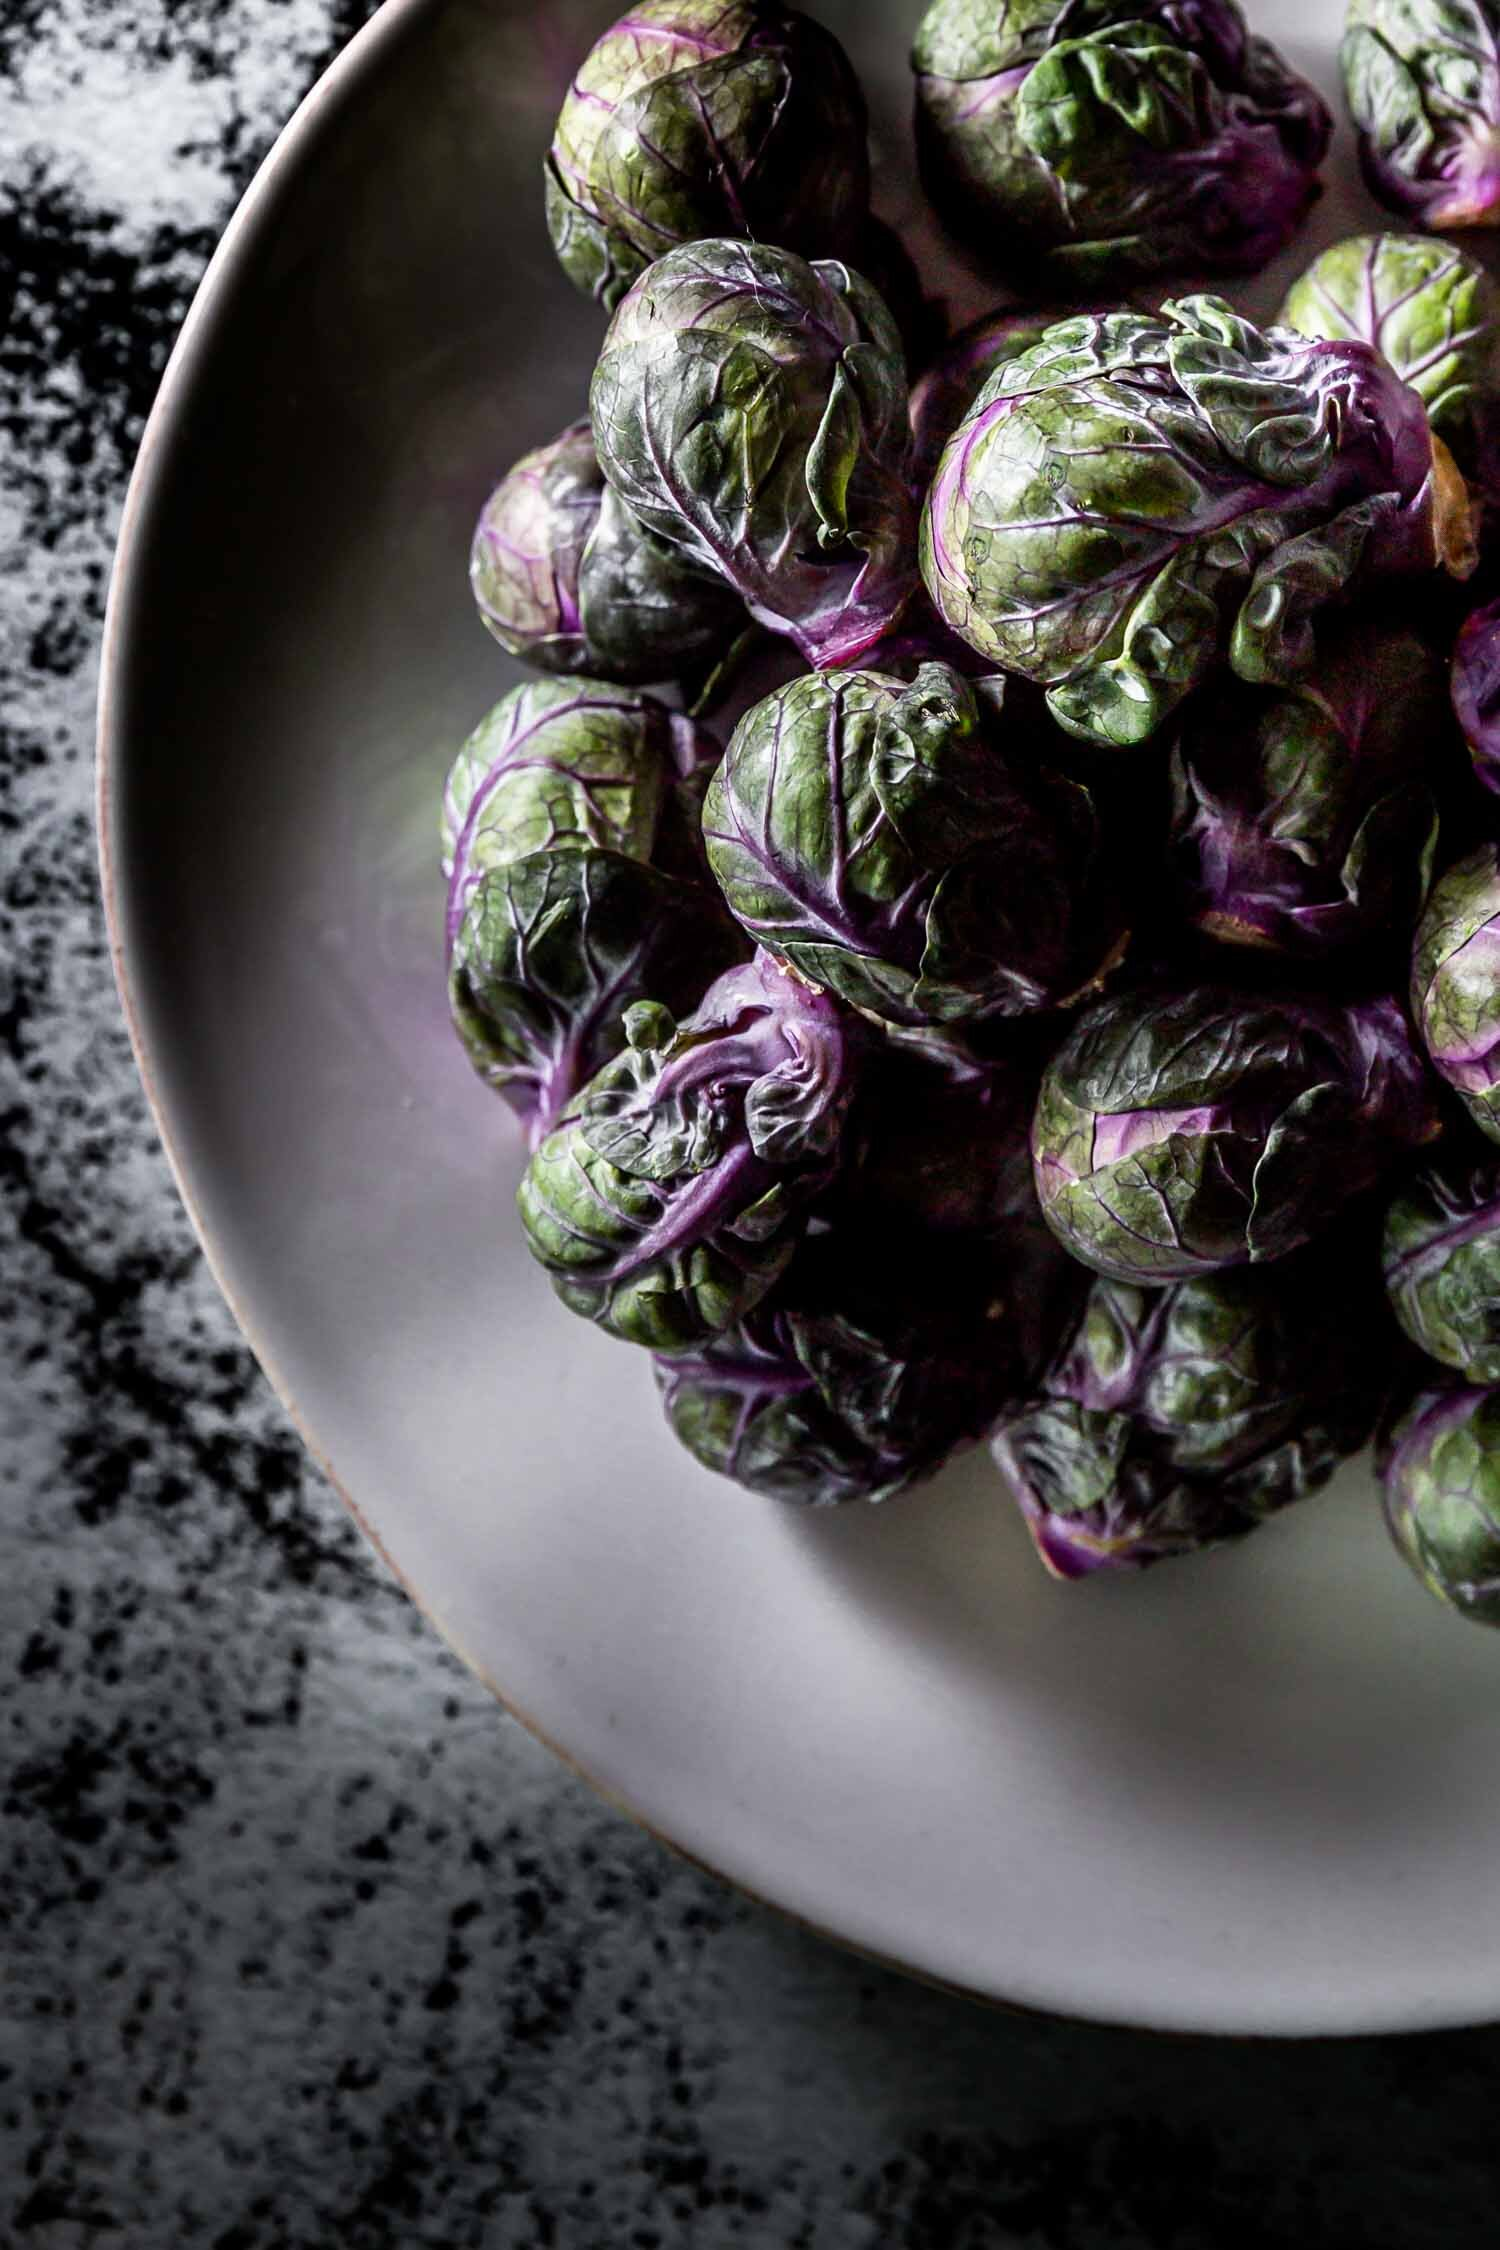 purple-brussels-sprouts.jpg